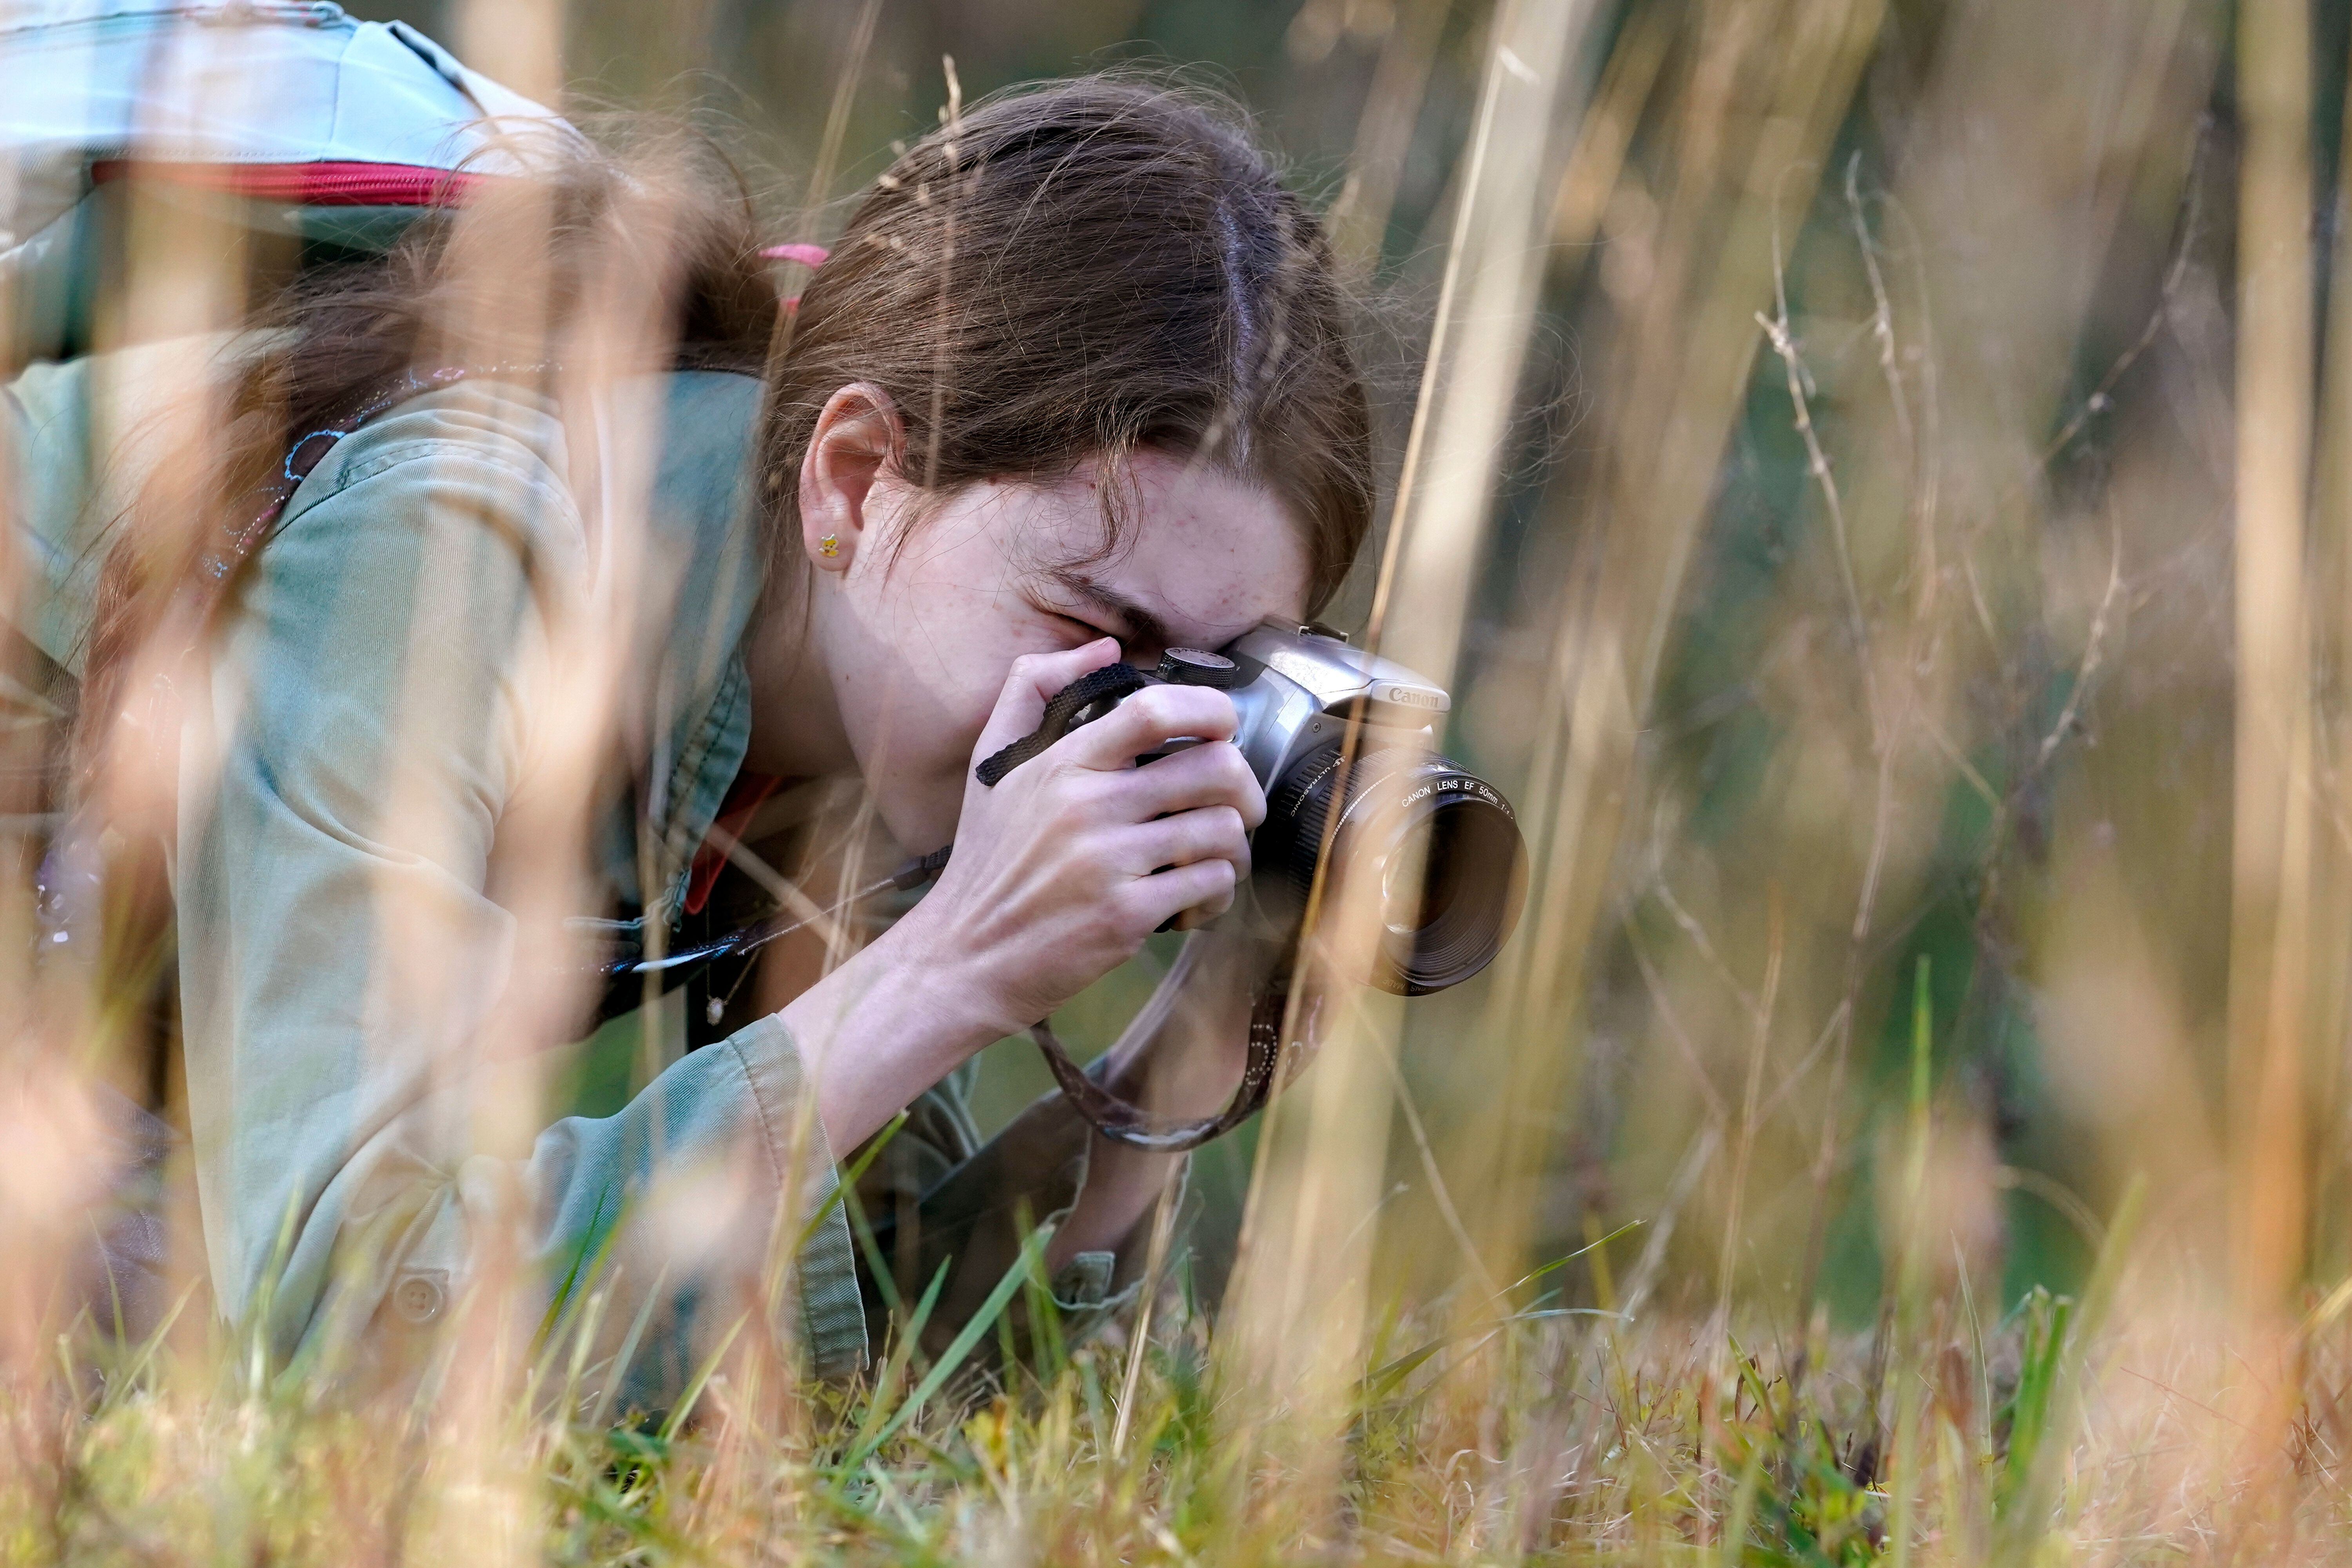 Olivia Chaffin takes photographs in a wooded area as she works on a Girl Scout photography merit badge in Jonesborough.